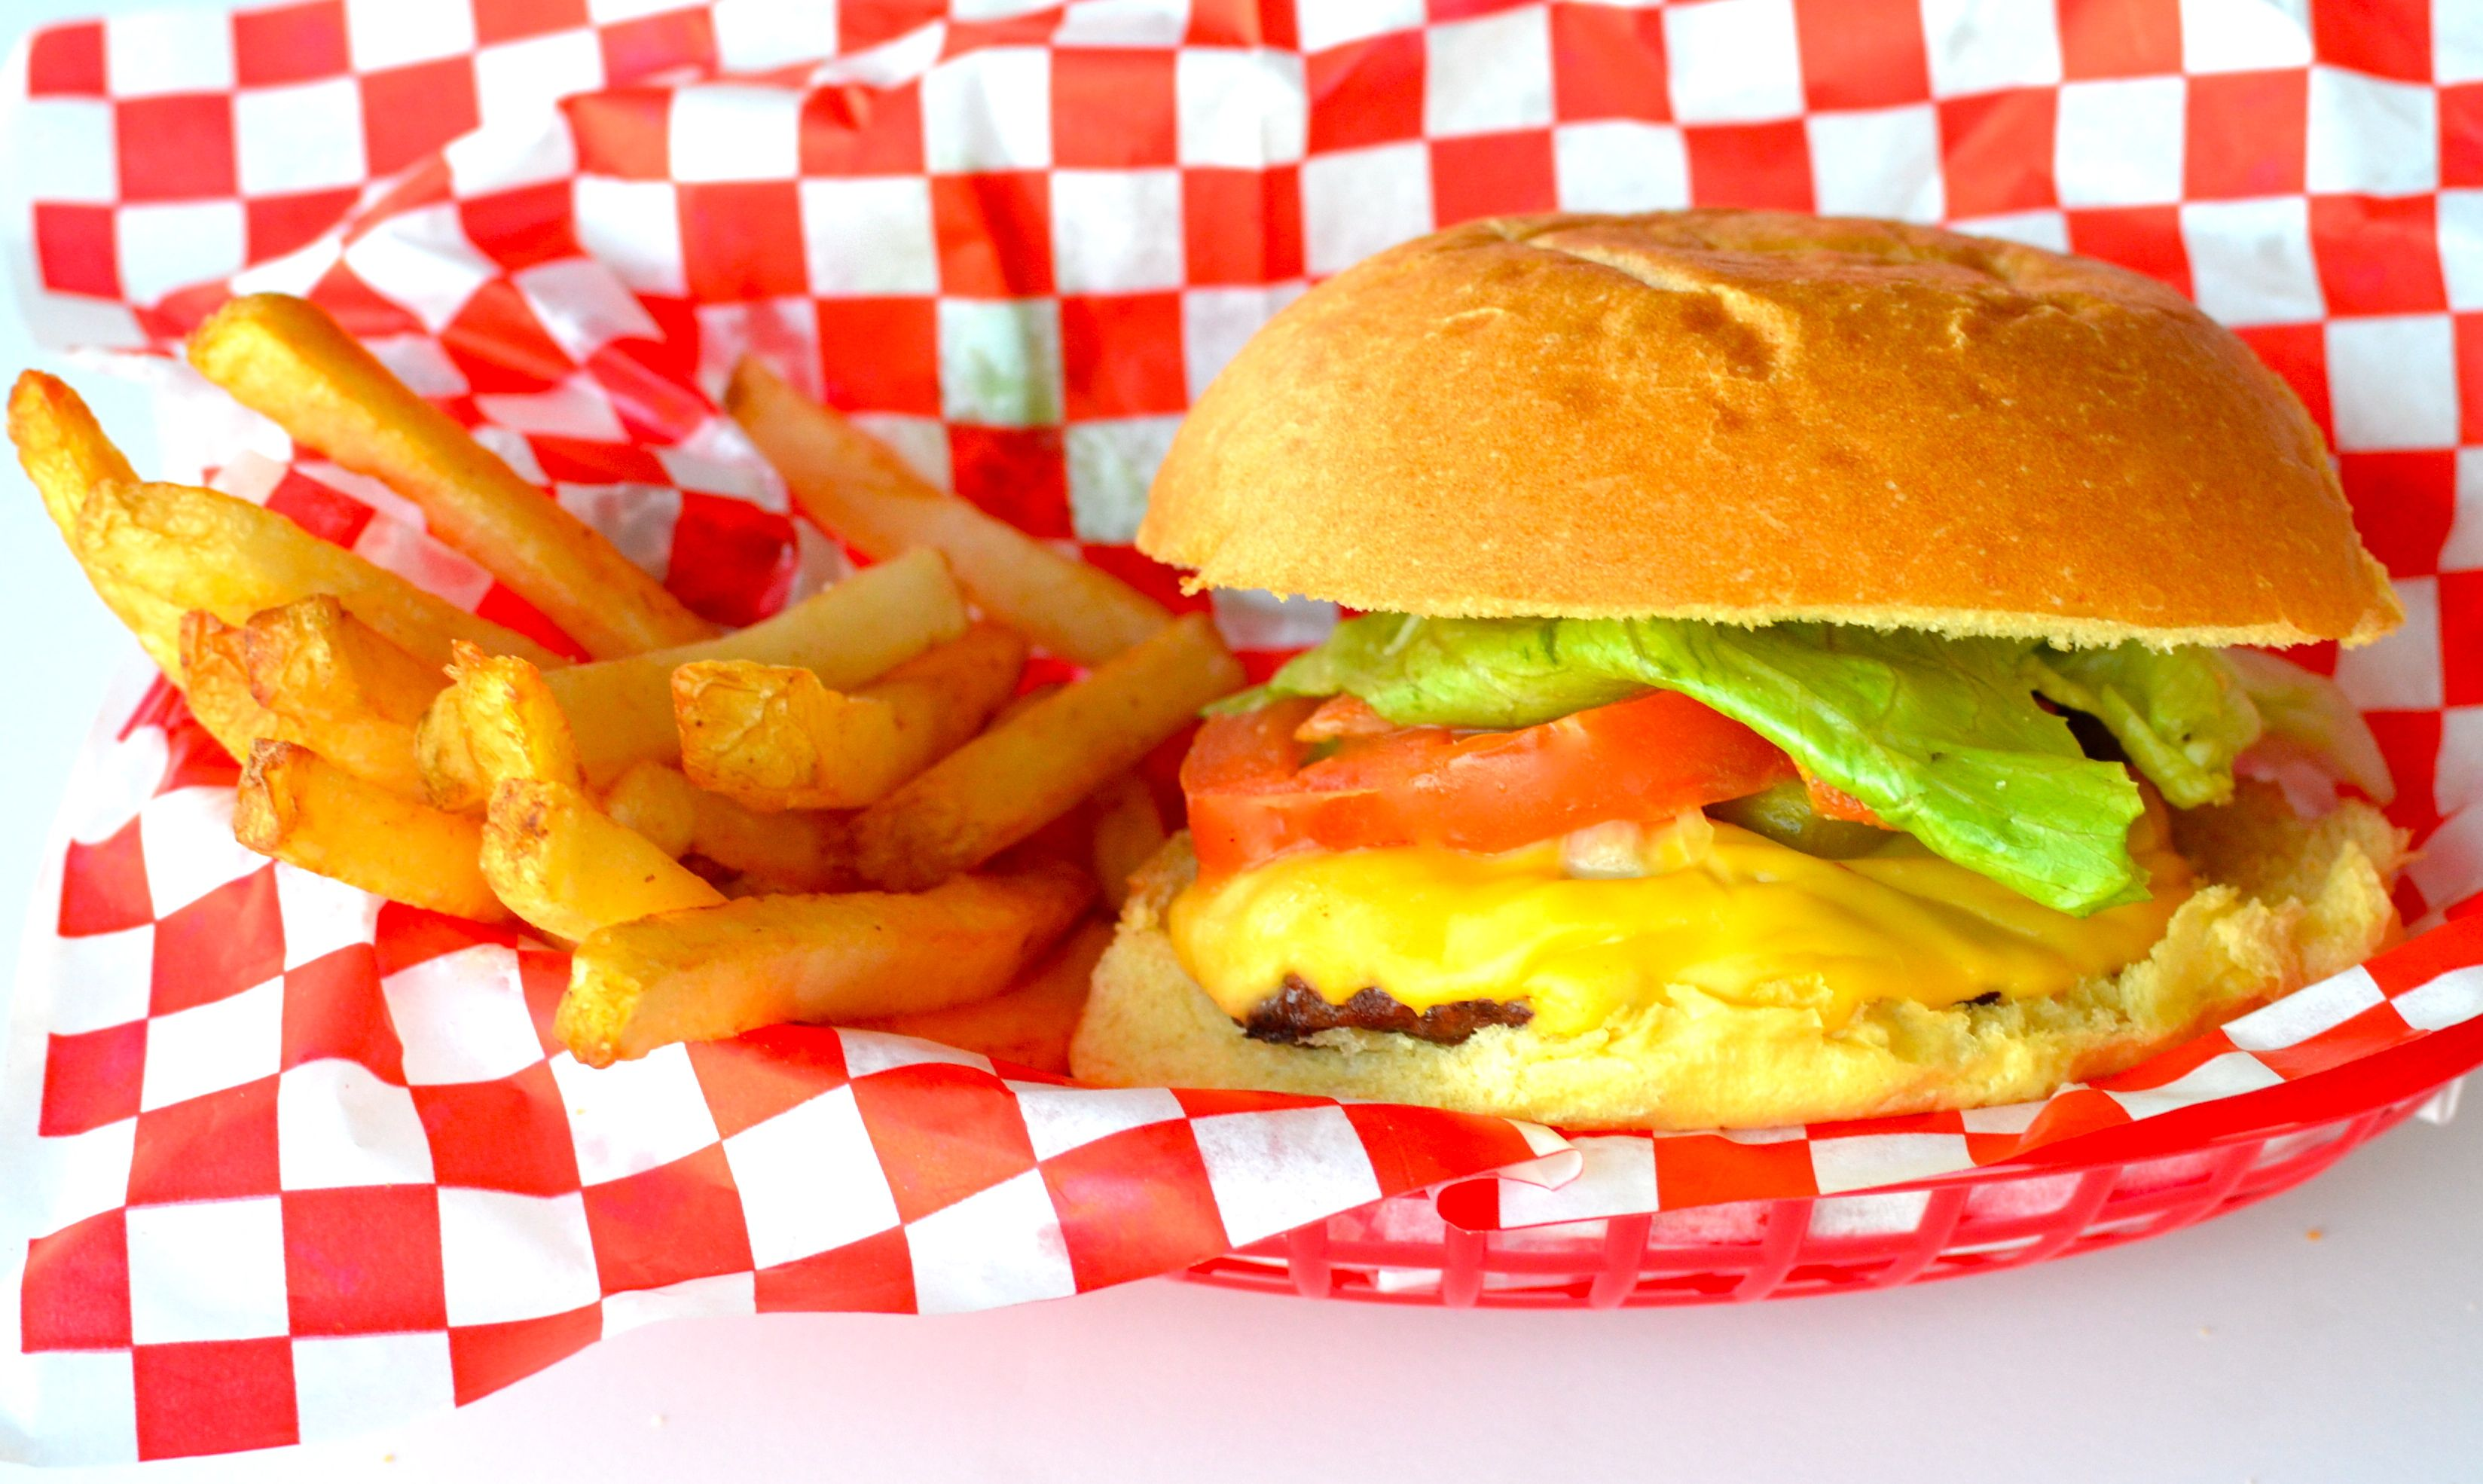 Ore-Ida French Fries and a Cheeseburger